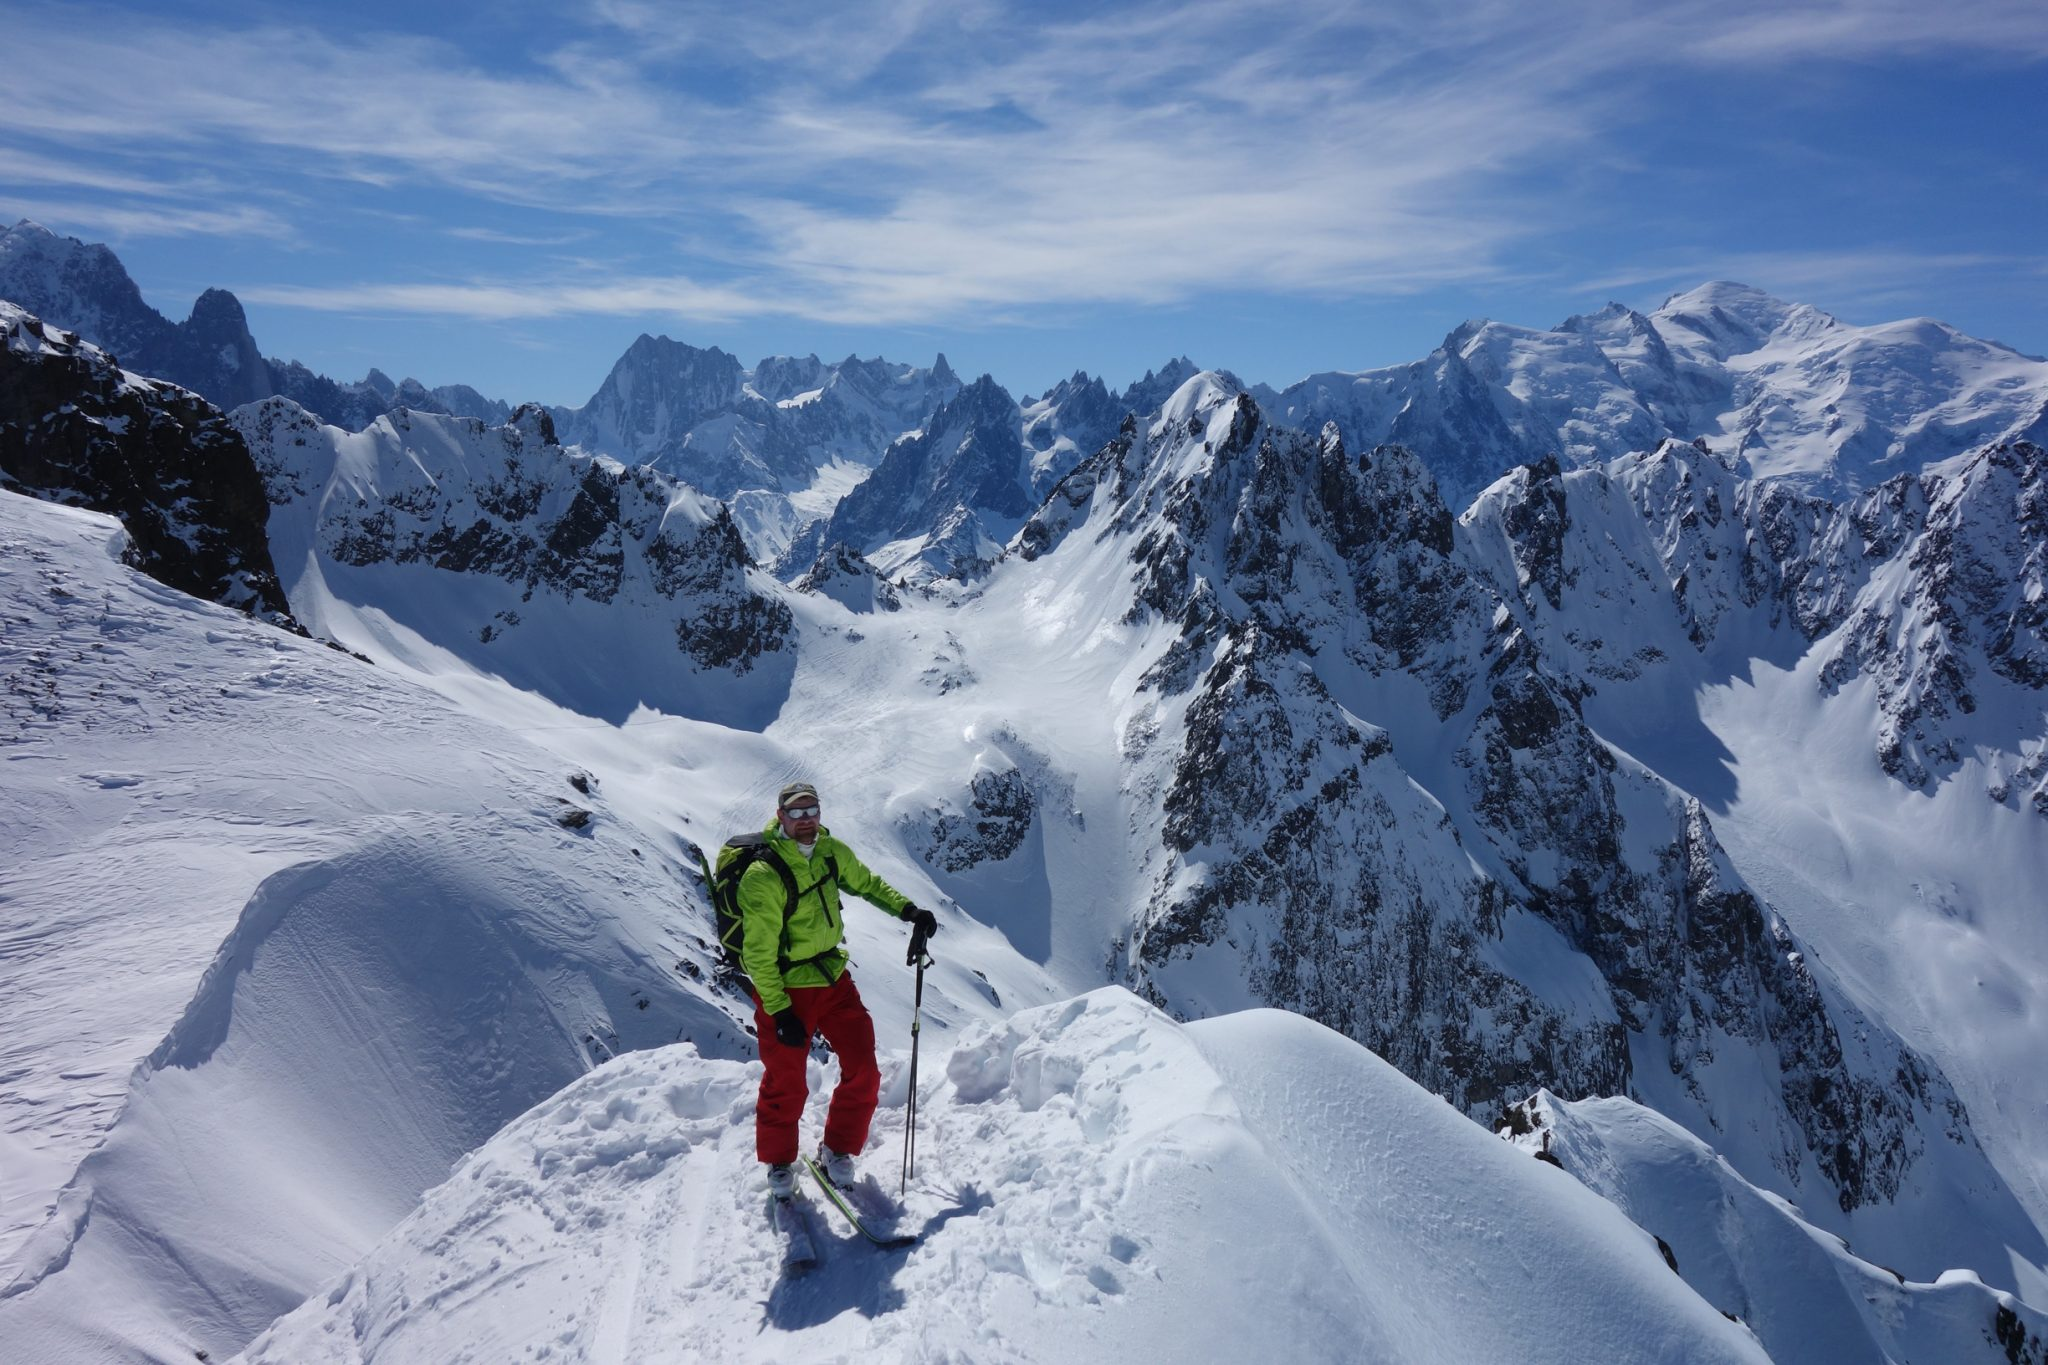 Ski mountaineering in the Aiguilles Rouges